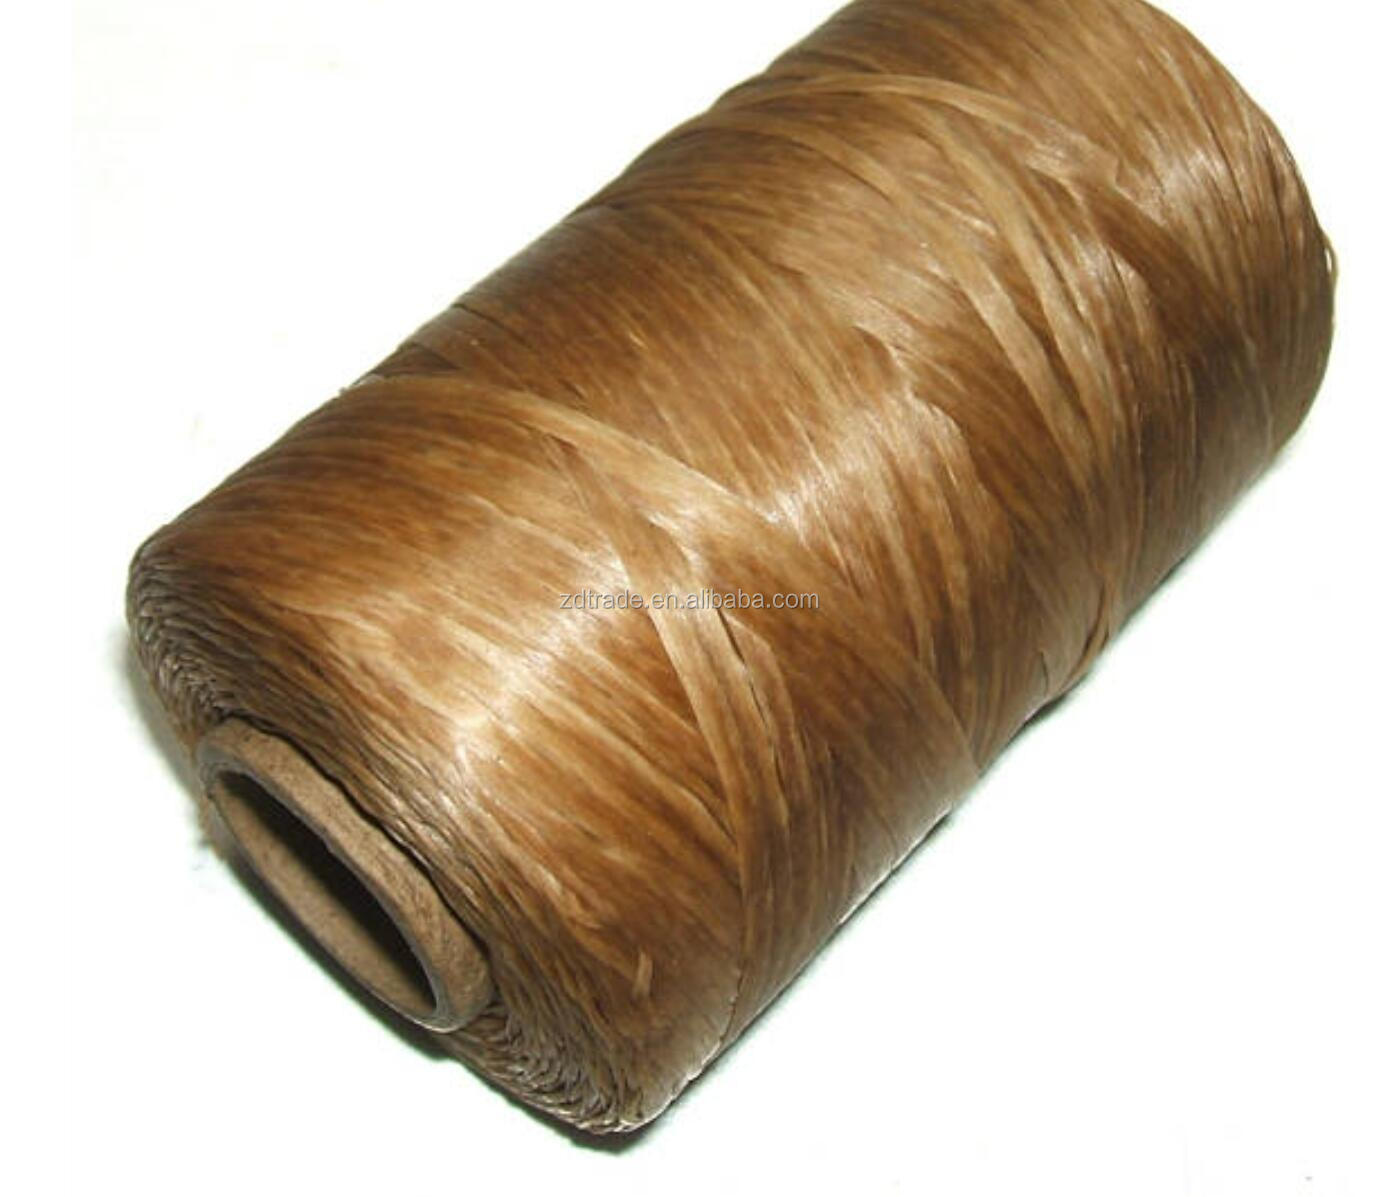 25yards Artificial SINEW Thread Polyester Leatherworking Jewelry Making